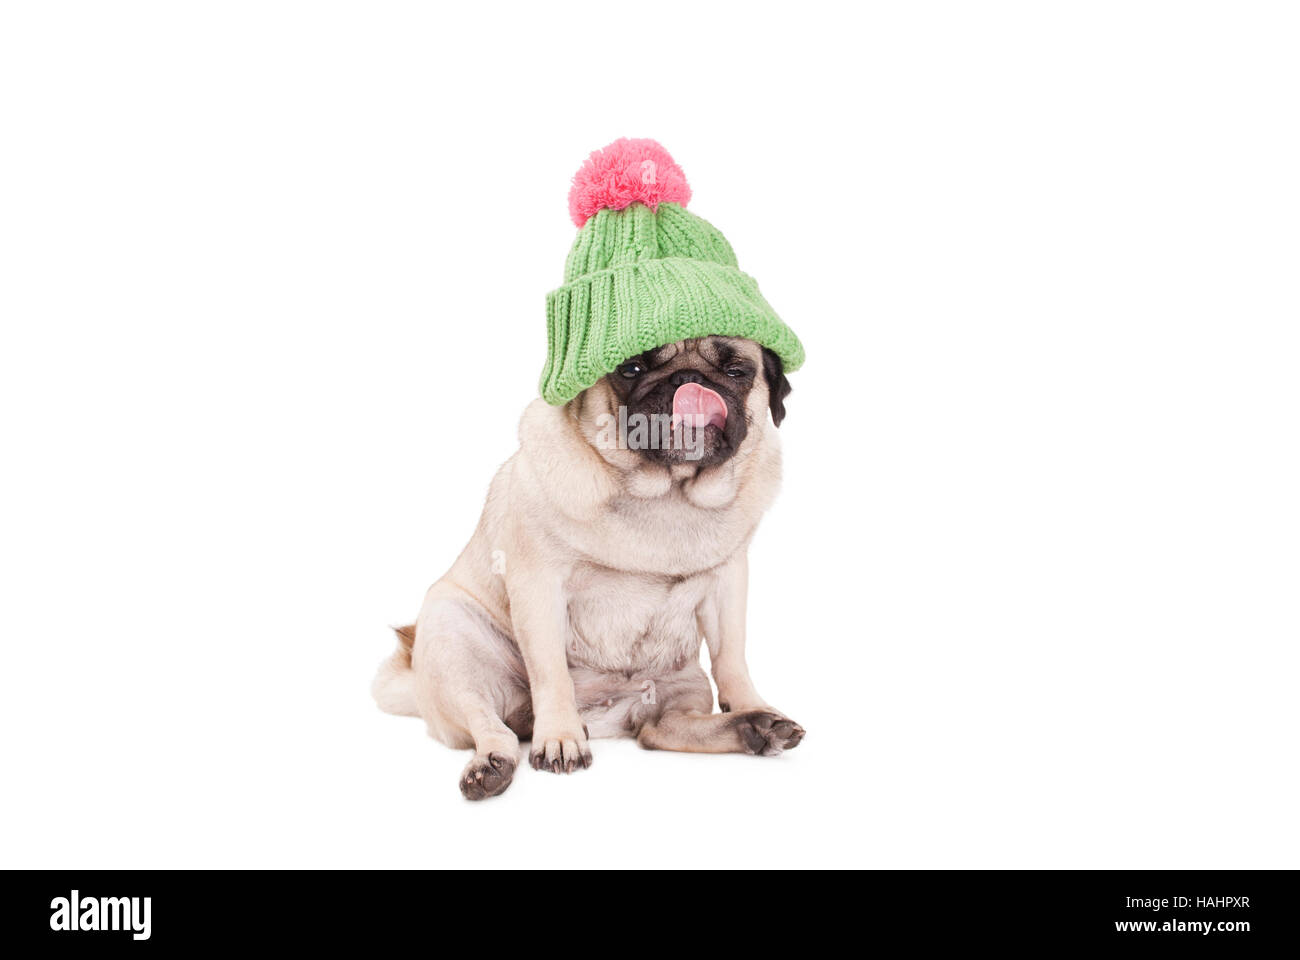 pug puppy dog sitting down, wearing a green knitted hat with pink pompon and licking nose, on white background - Stock Image